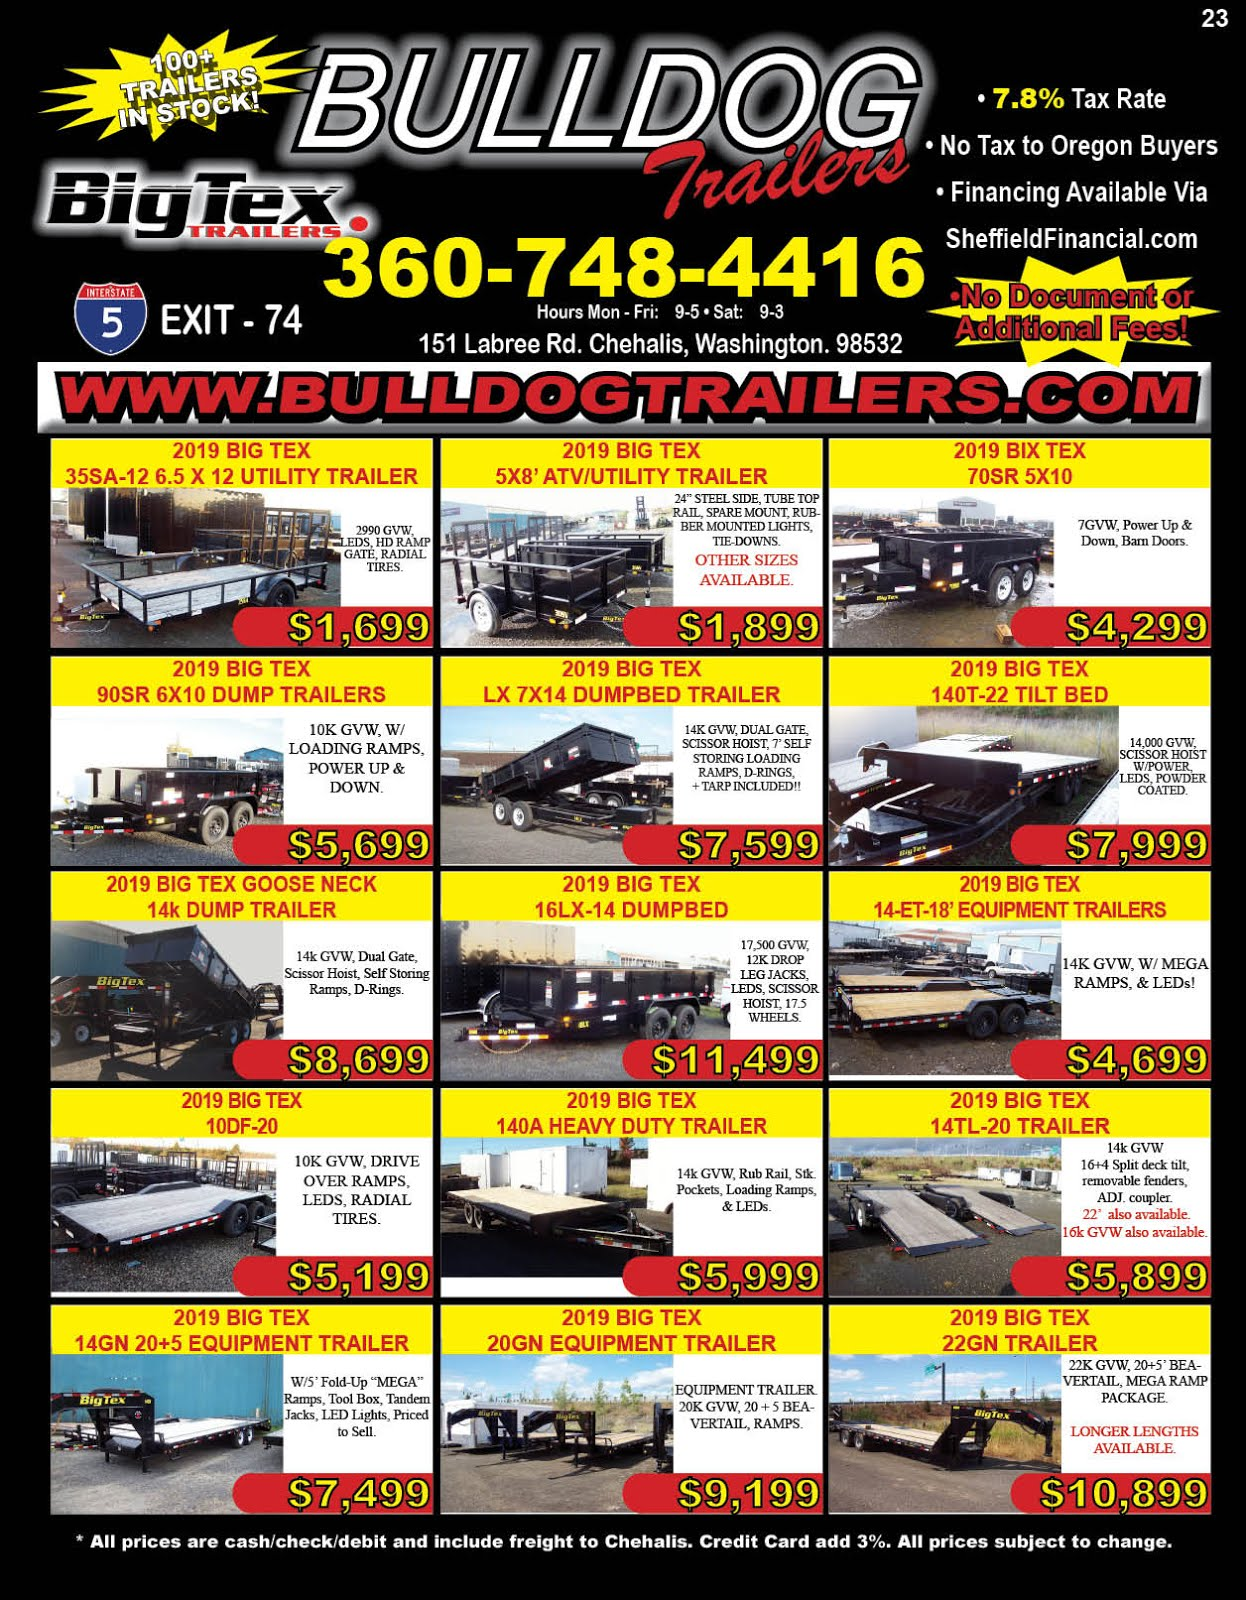 Bulldog Trailer Sales Carries Big Tex Trailers!!